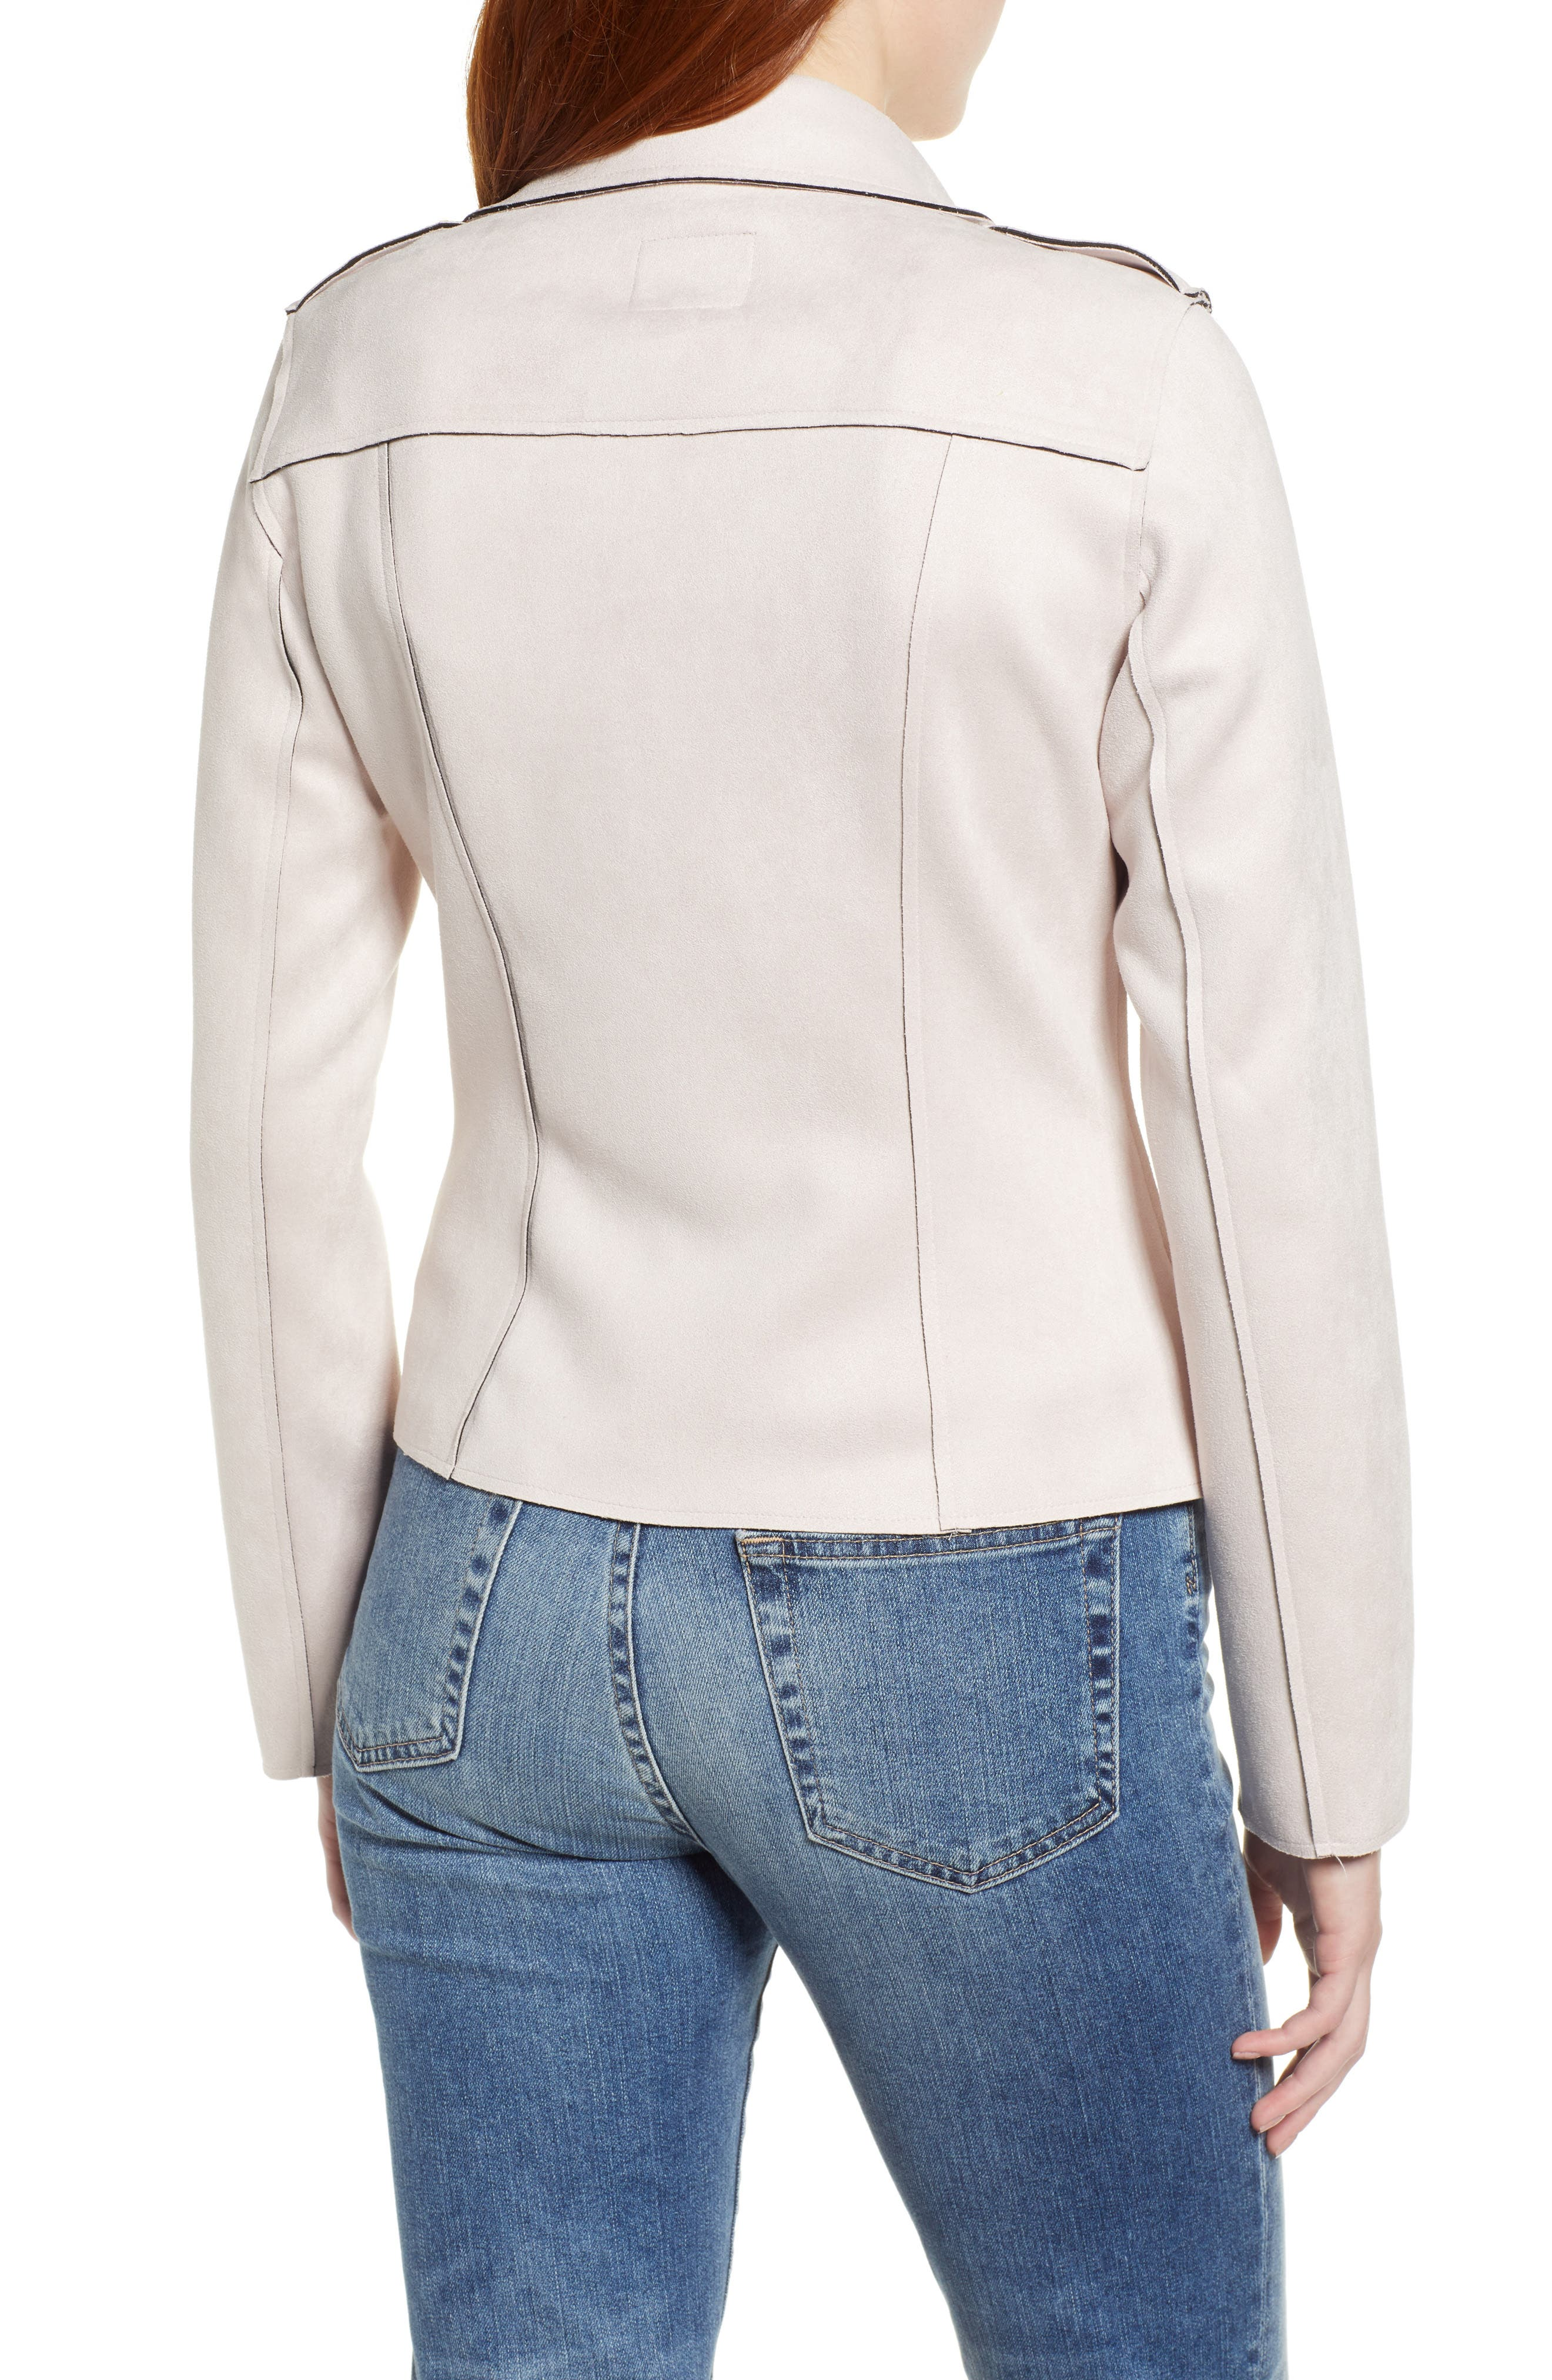 KUT FROM THE KLOTH,                             Haddie Faux Suede Moto Jacket,                             Alternate thumbnail 2, color,                             PALE BLUSH